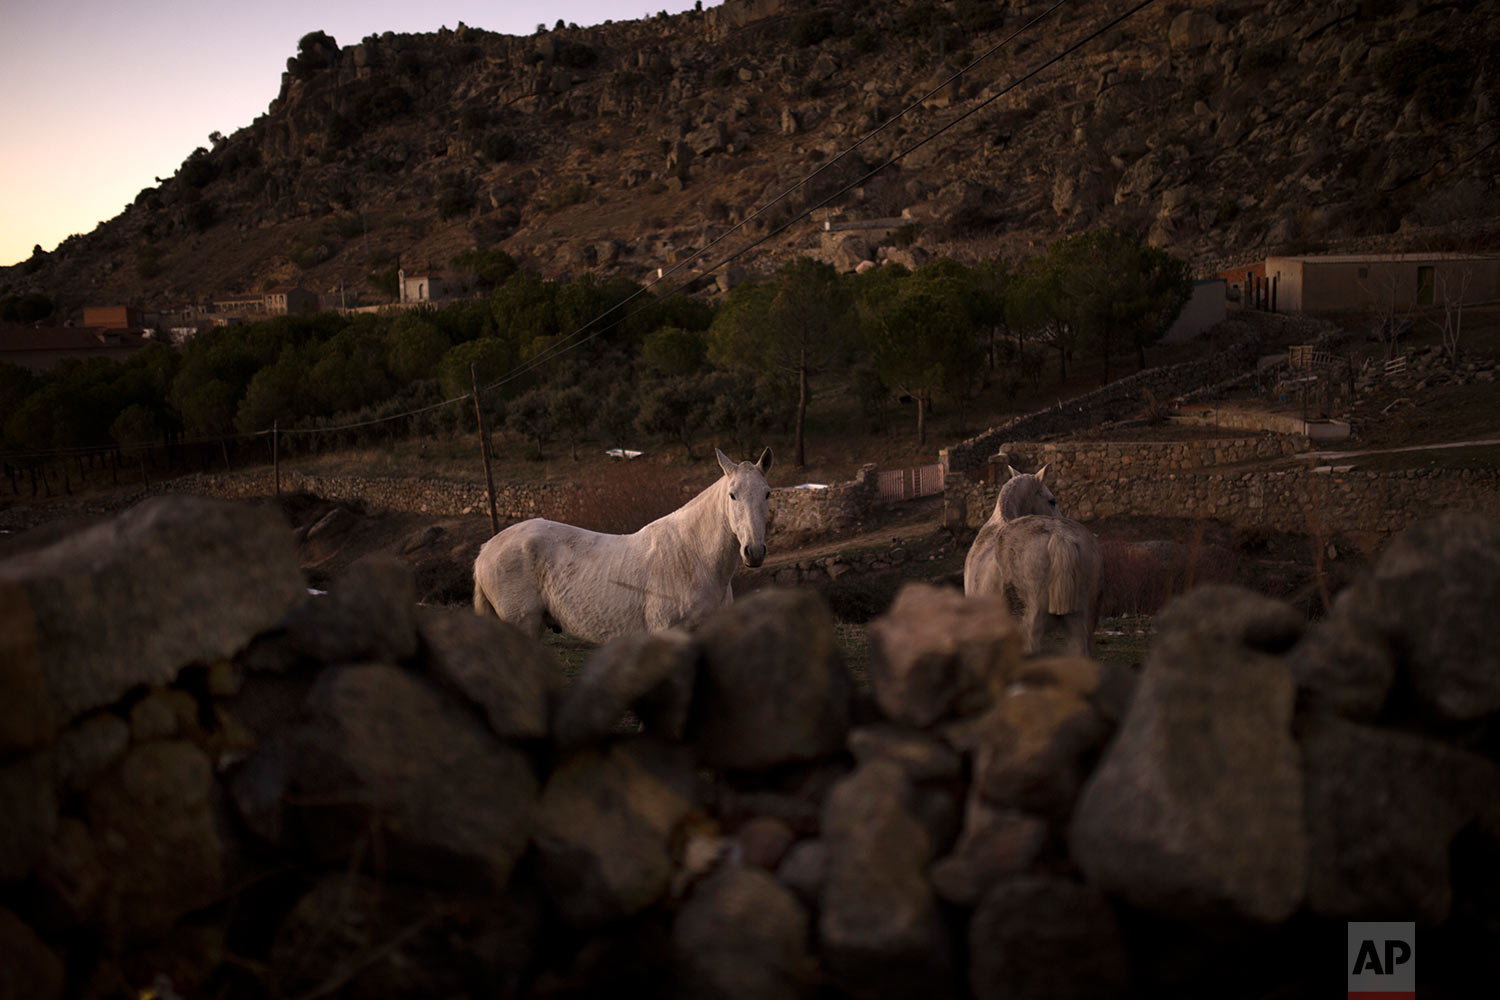 A horse stands inside a countryside enclosure before the ritual in honor of Saint Anthony the Abbot, the patron saint of animals, in San Bartolome de Pinares, Spain, Tuesday, Jan. 16, 2018. (AP Photo/Francisco Seco) |  See these photos on AP Images